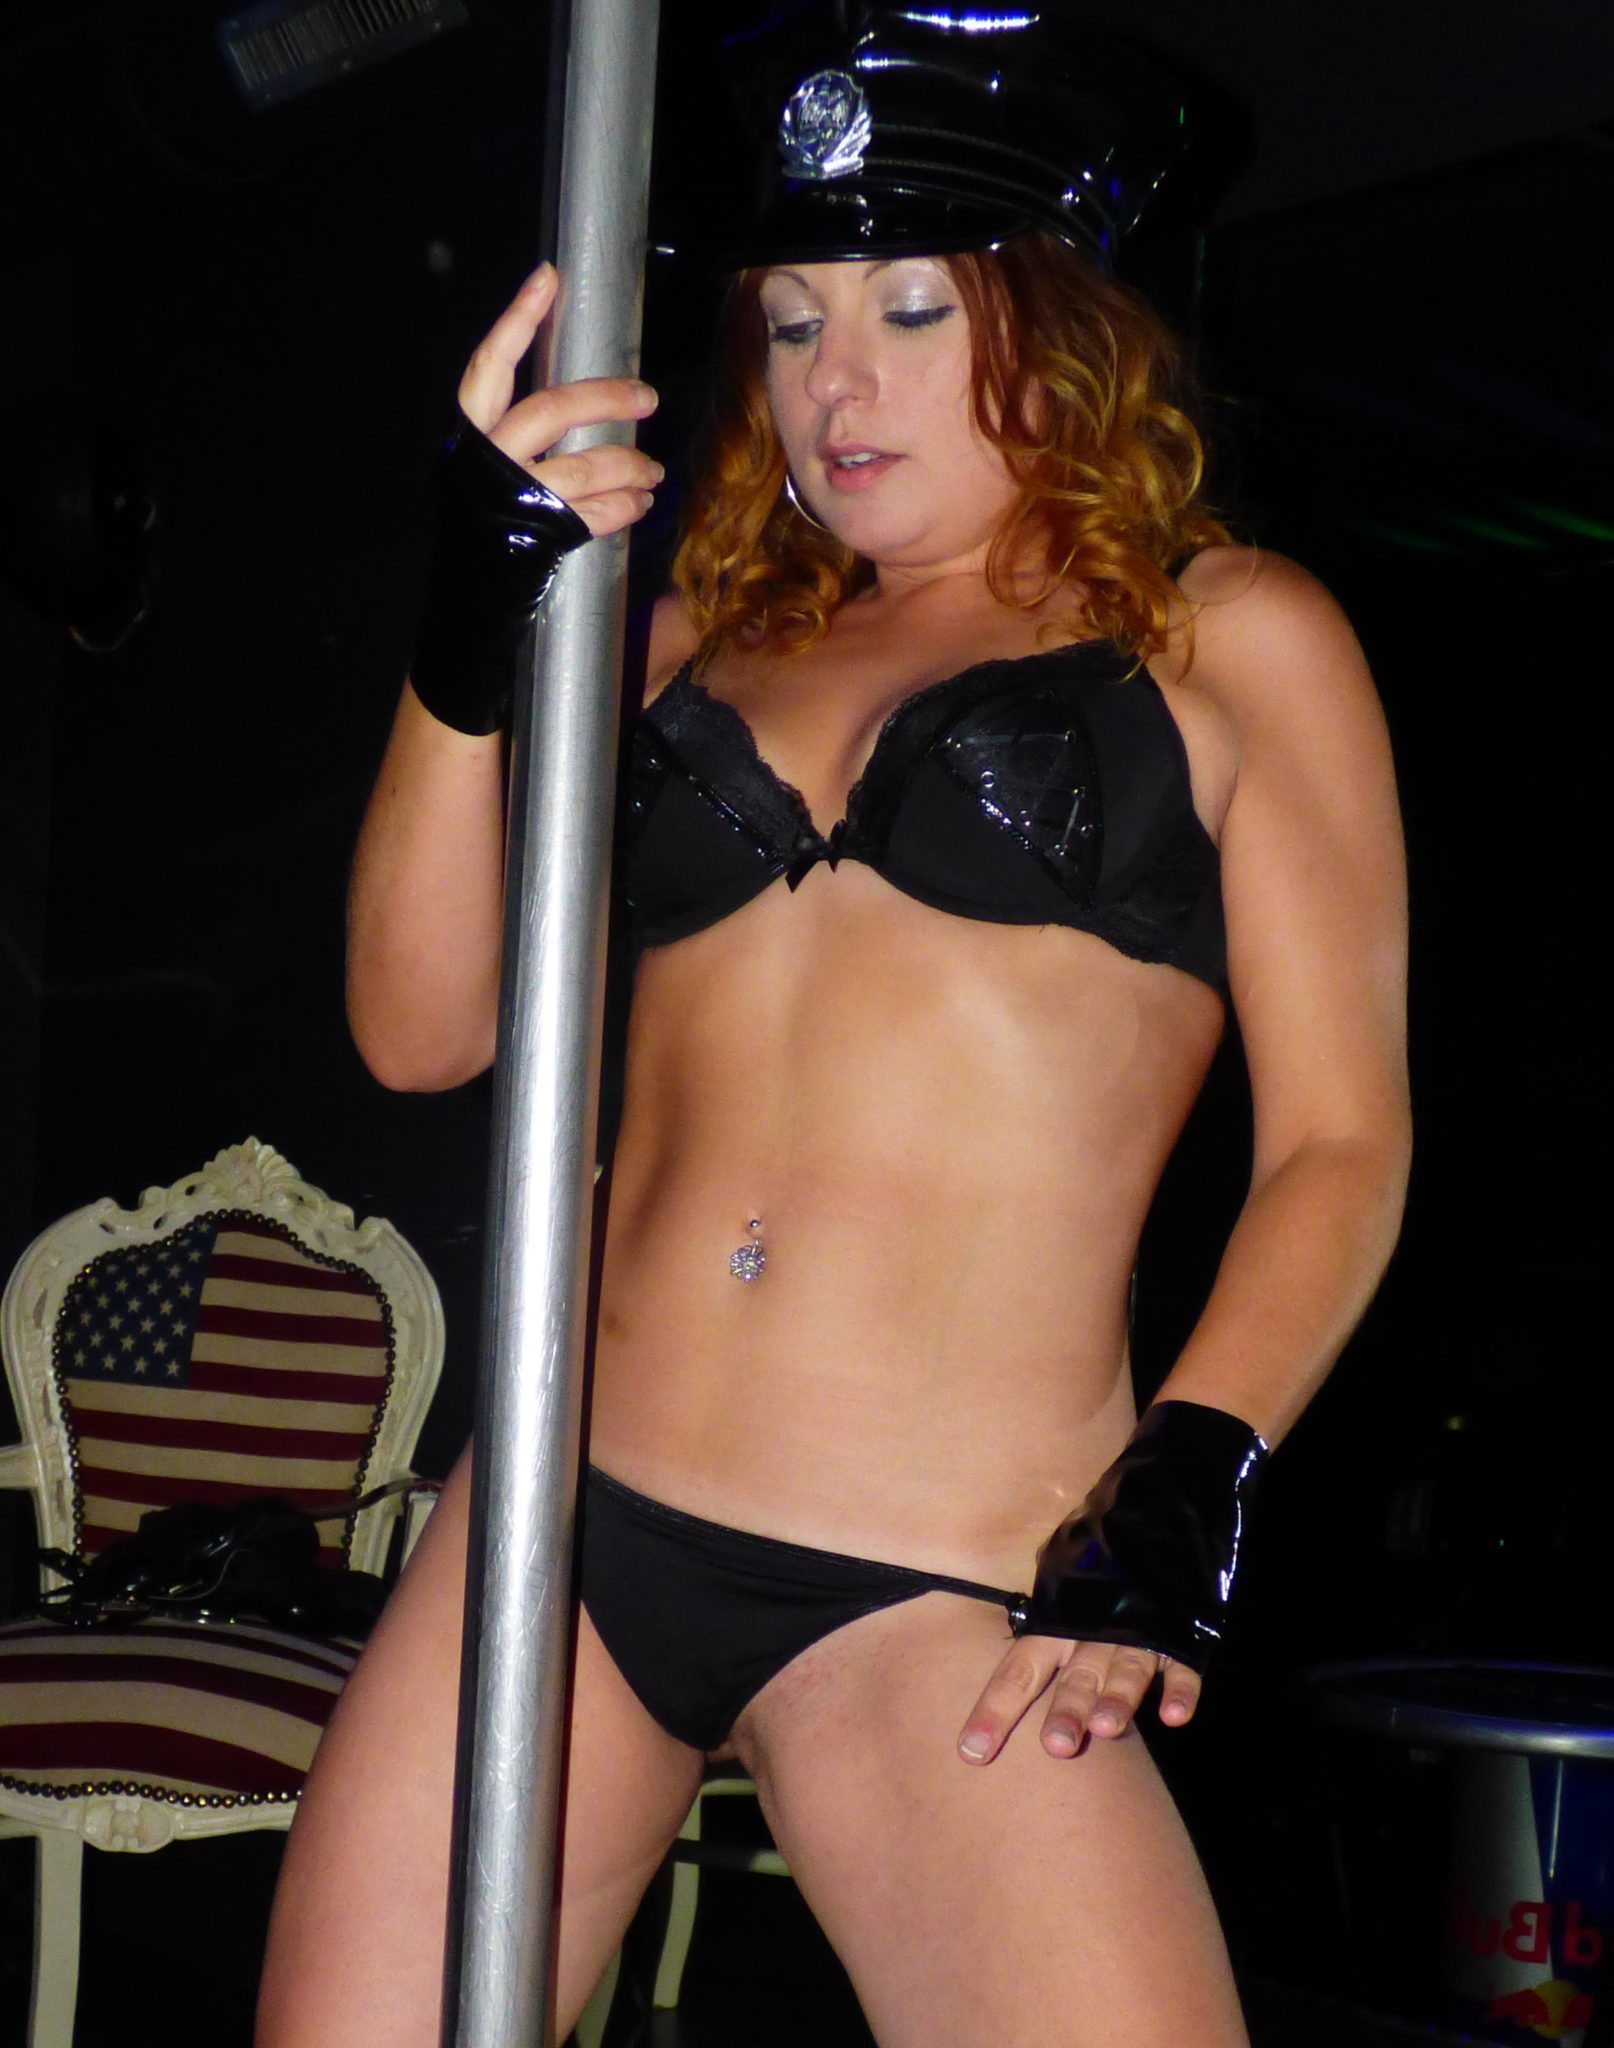 stripteaseuse saint lo alexia